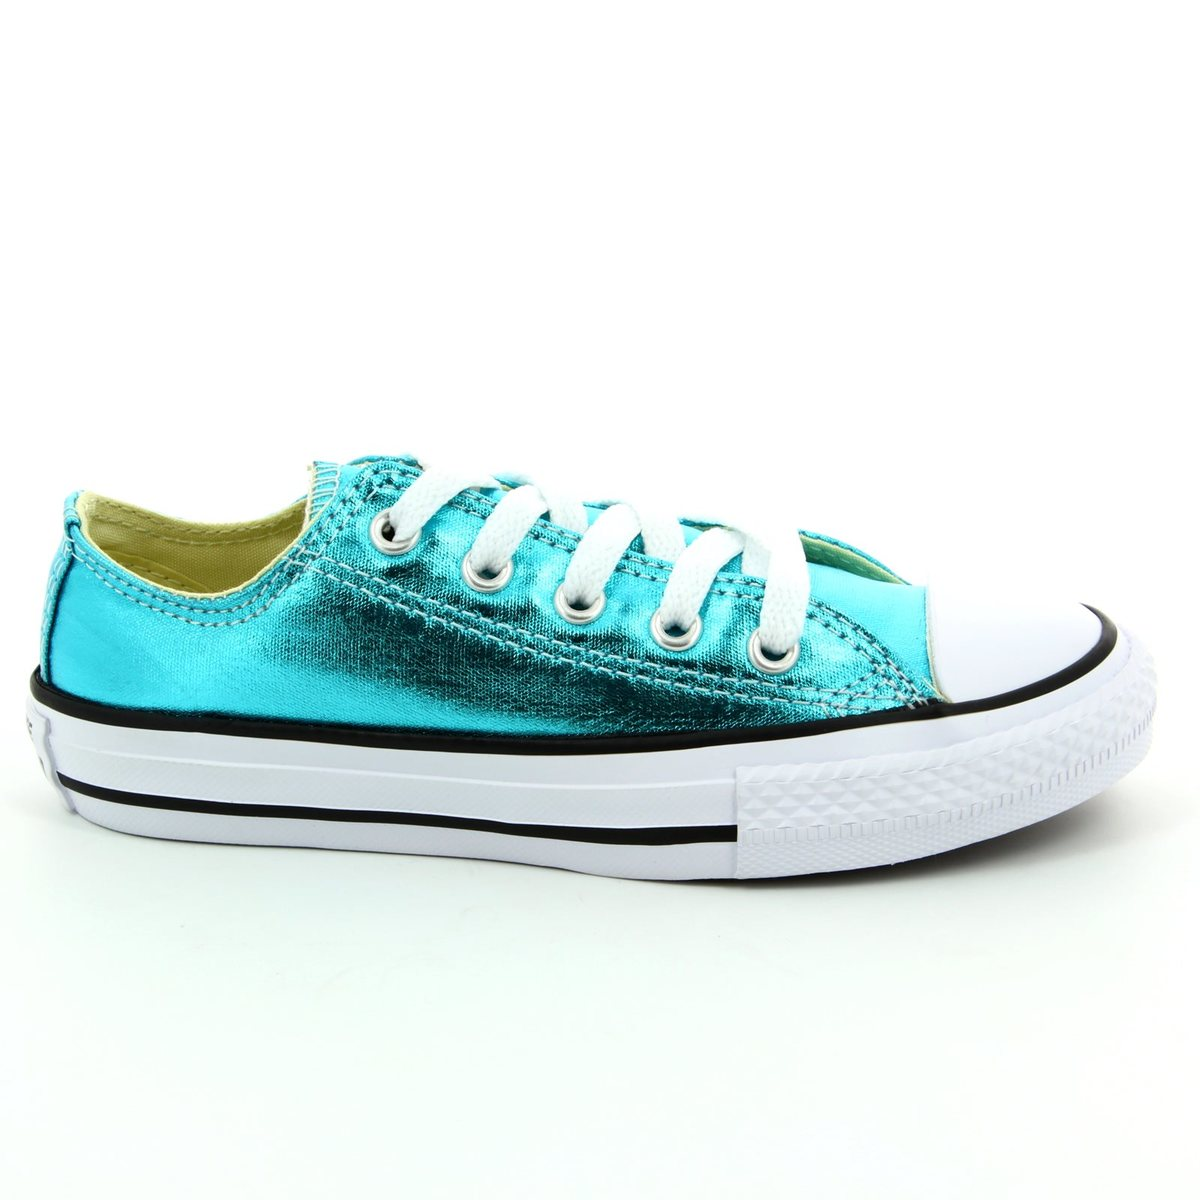 7bf09d0d6bd6 Converse Trainers - Turquoise - 355560C Chuck Taylor All Star OX Classic